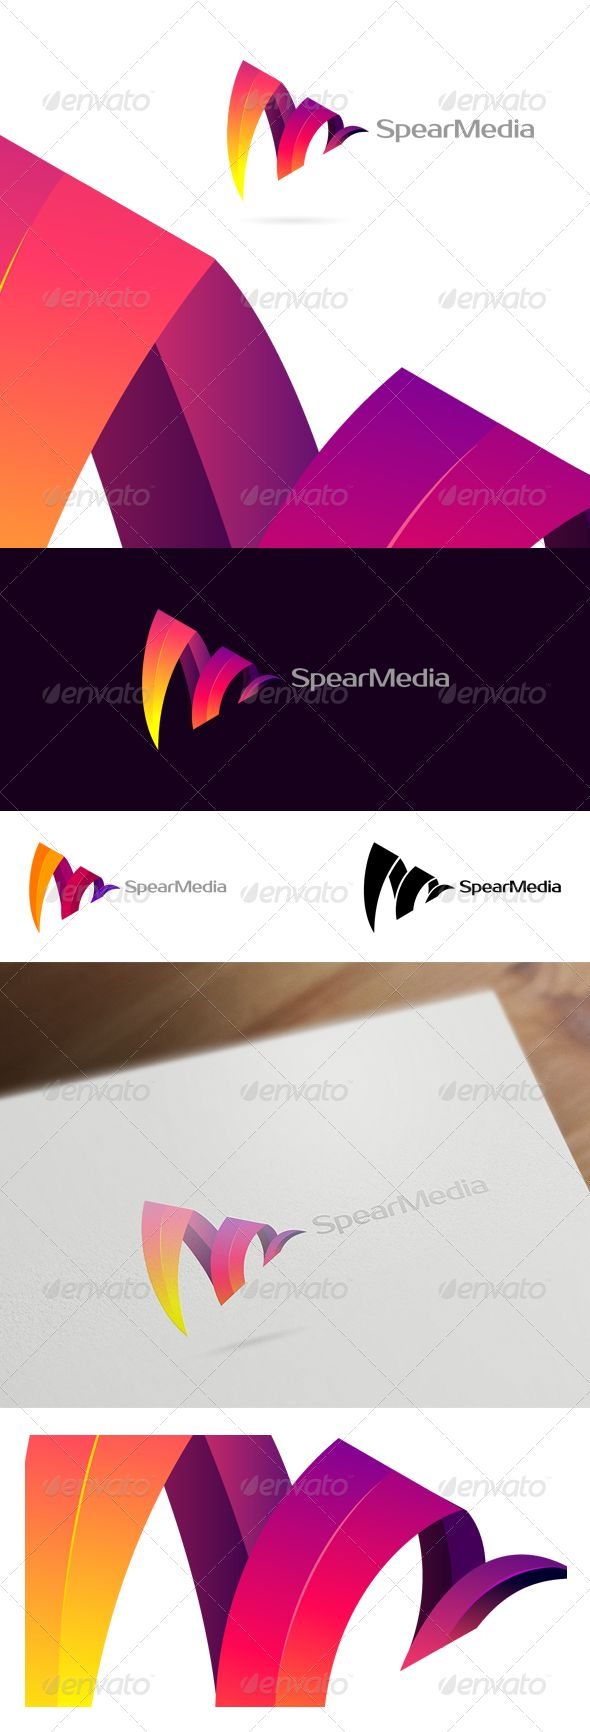 Spear Media - Colorful Corporate & Creative Logo — Vector EPS #gradient #music • Available here → https://graphicriver.net/item/spear-media-colorful-corporate-creative-logo/6275983?ref=pxcr